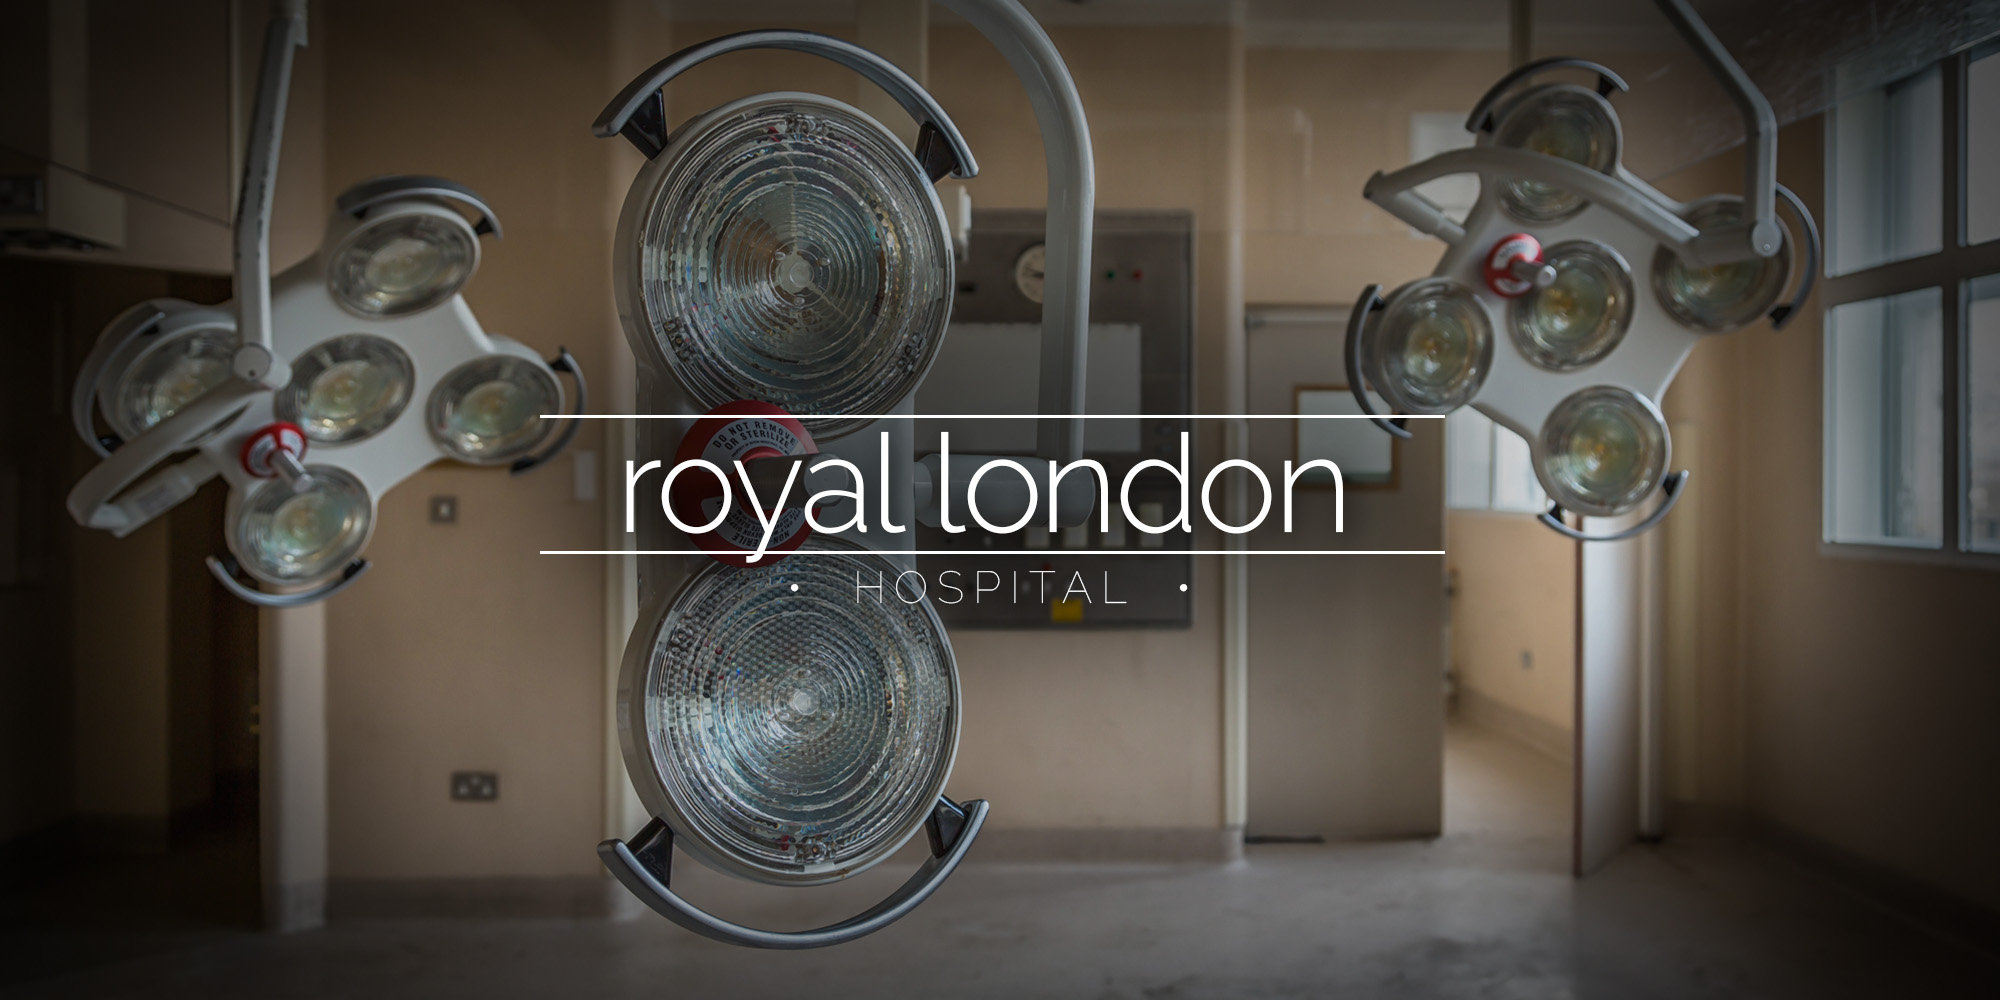 The abandoned Royal London Hospital